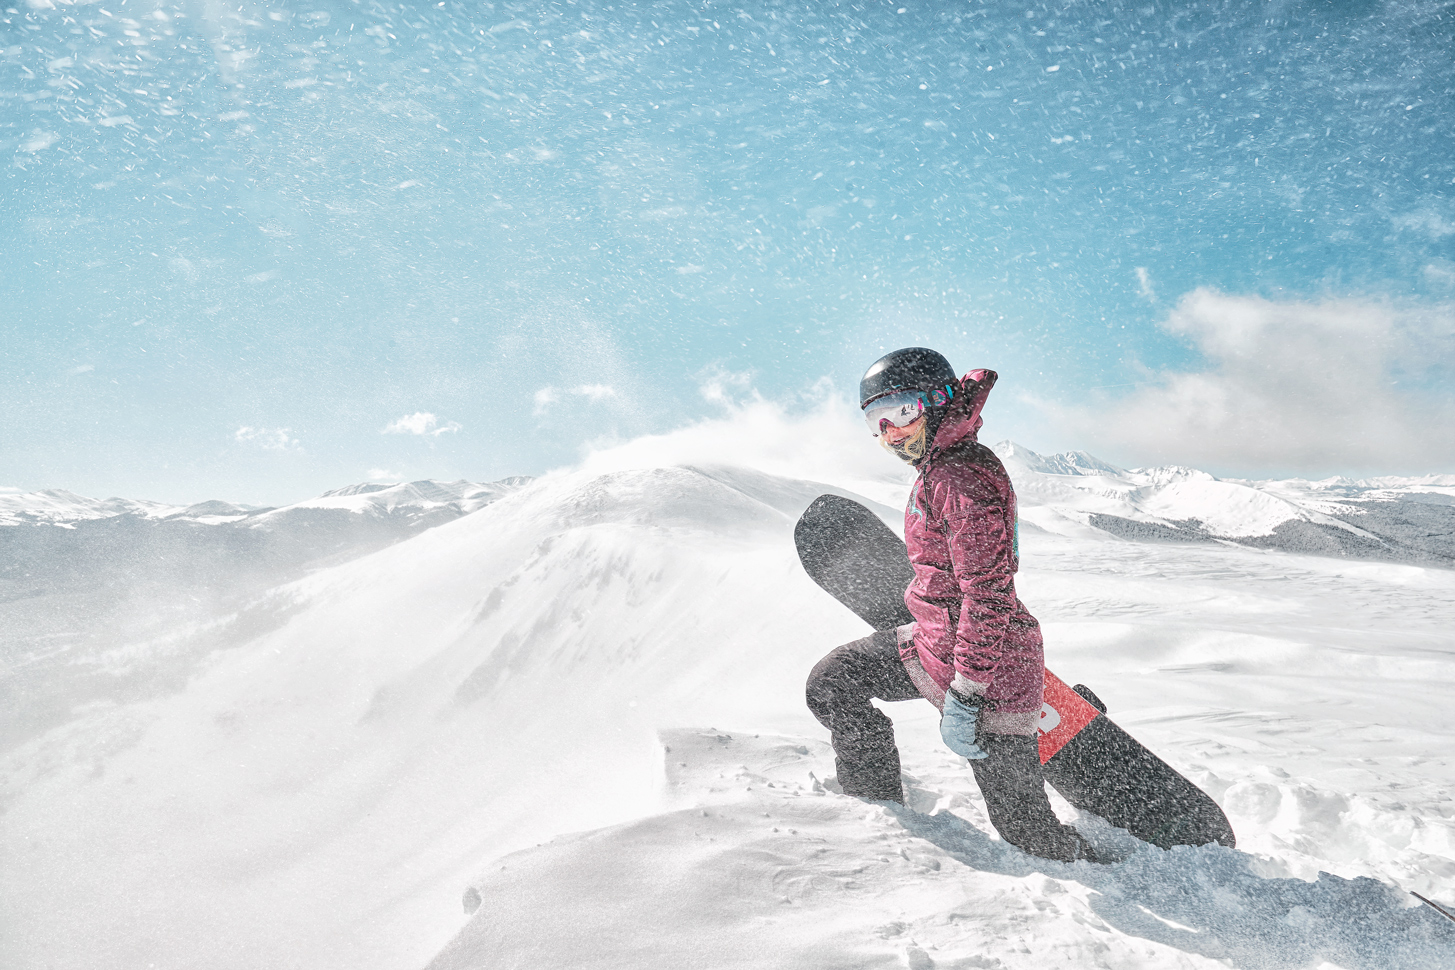 Woman snowboarder standing in a snow drift